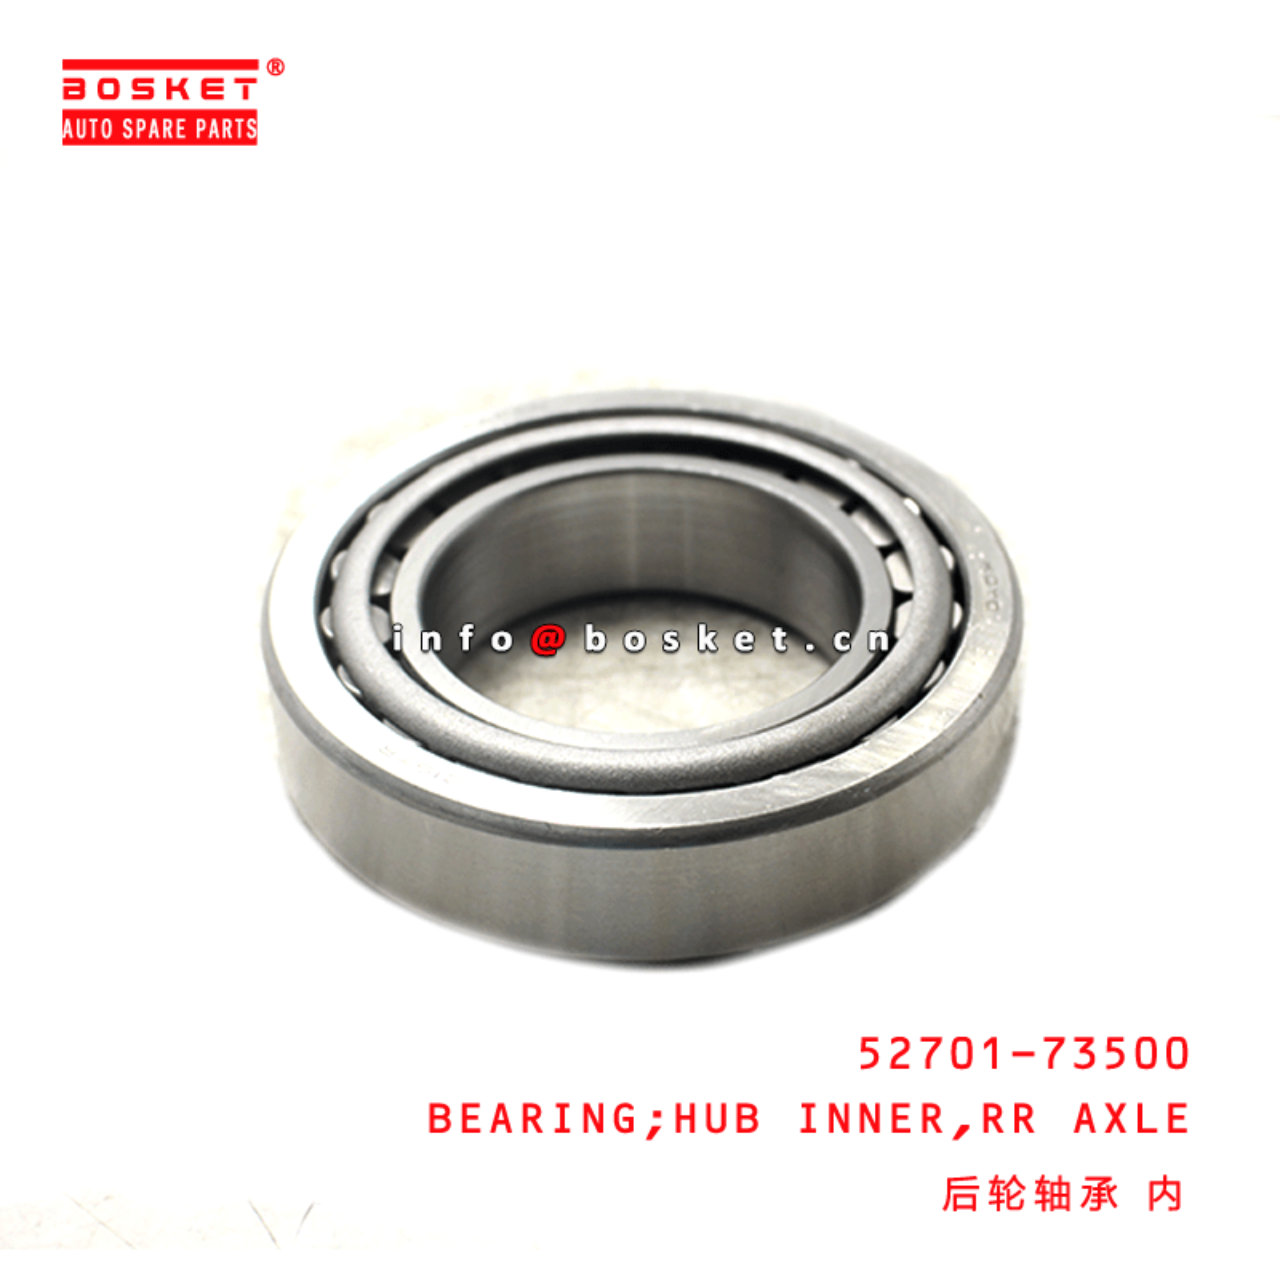 52701-73500 Rear Axle Hub Inner Bearing Suitable for ISUZU HD120